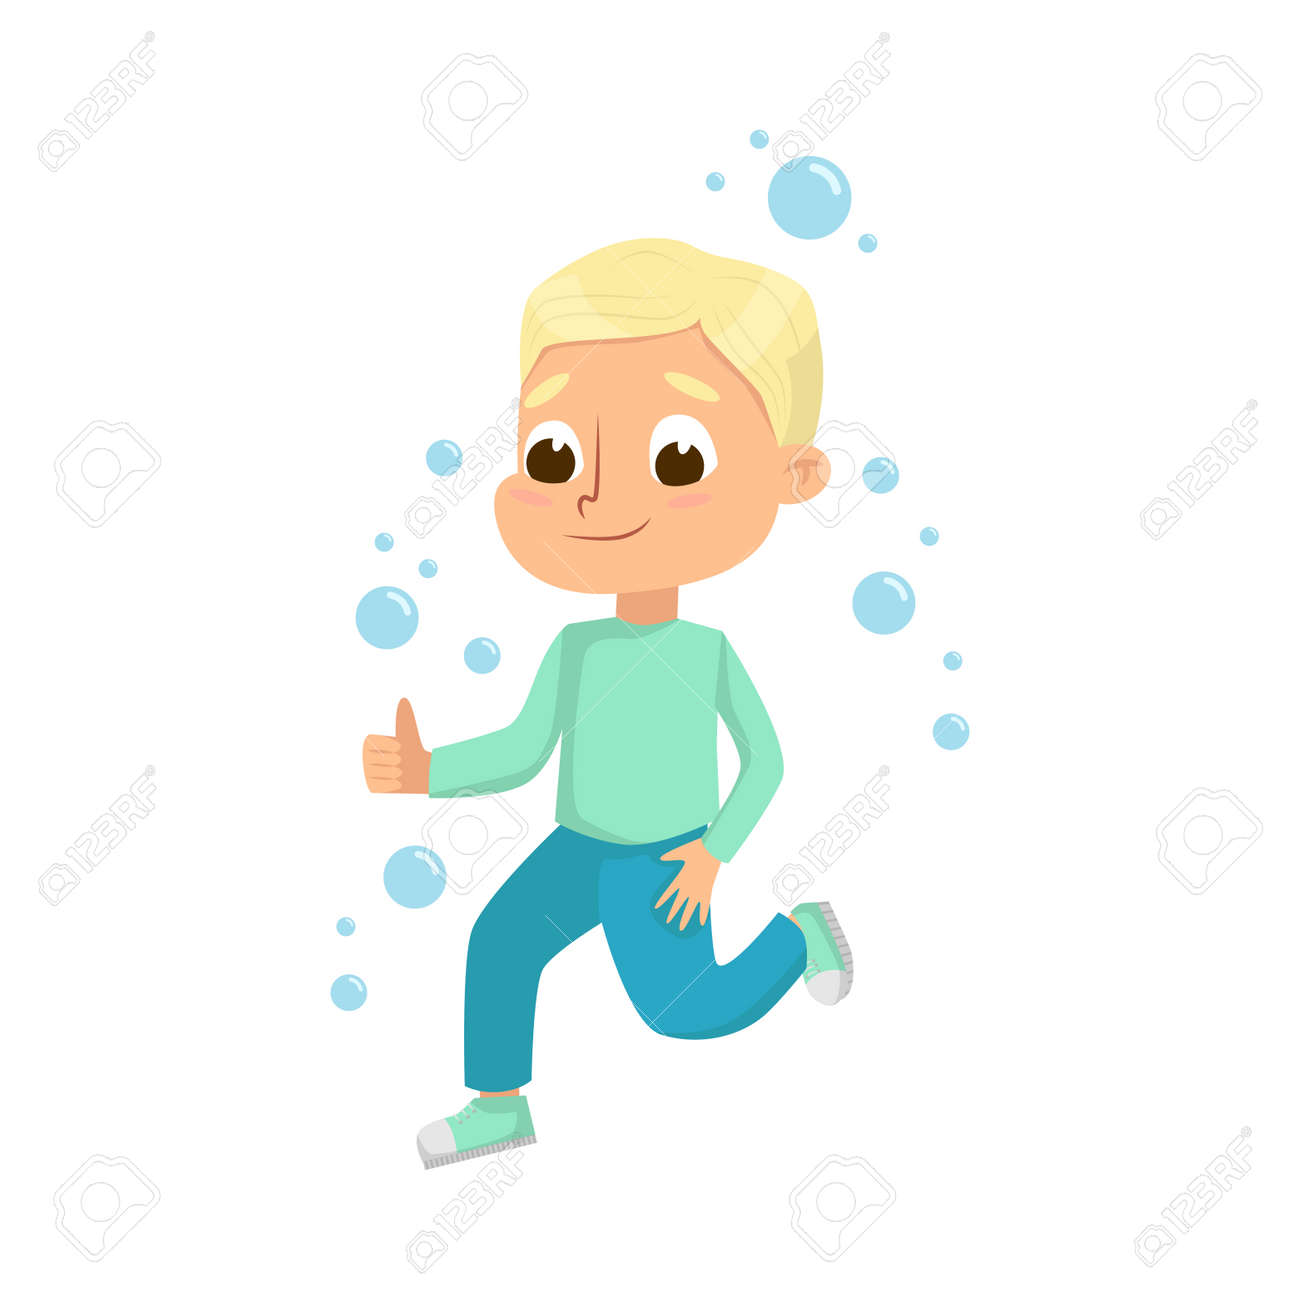 Cute Little Blonde Boy Playing with Soap Bubbles, Kids Leisure, Outdoor Hobby Game Cartoon Style Vector Illustration - 156316452